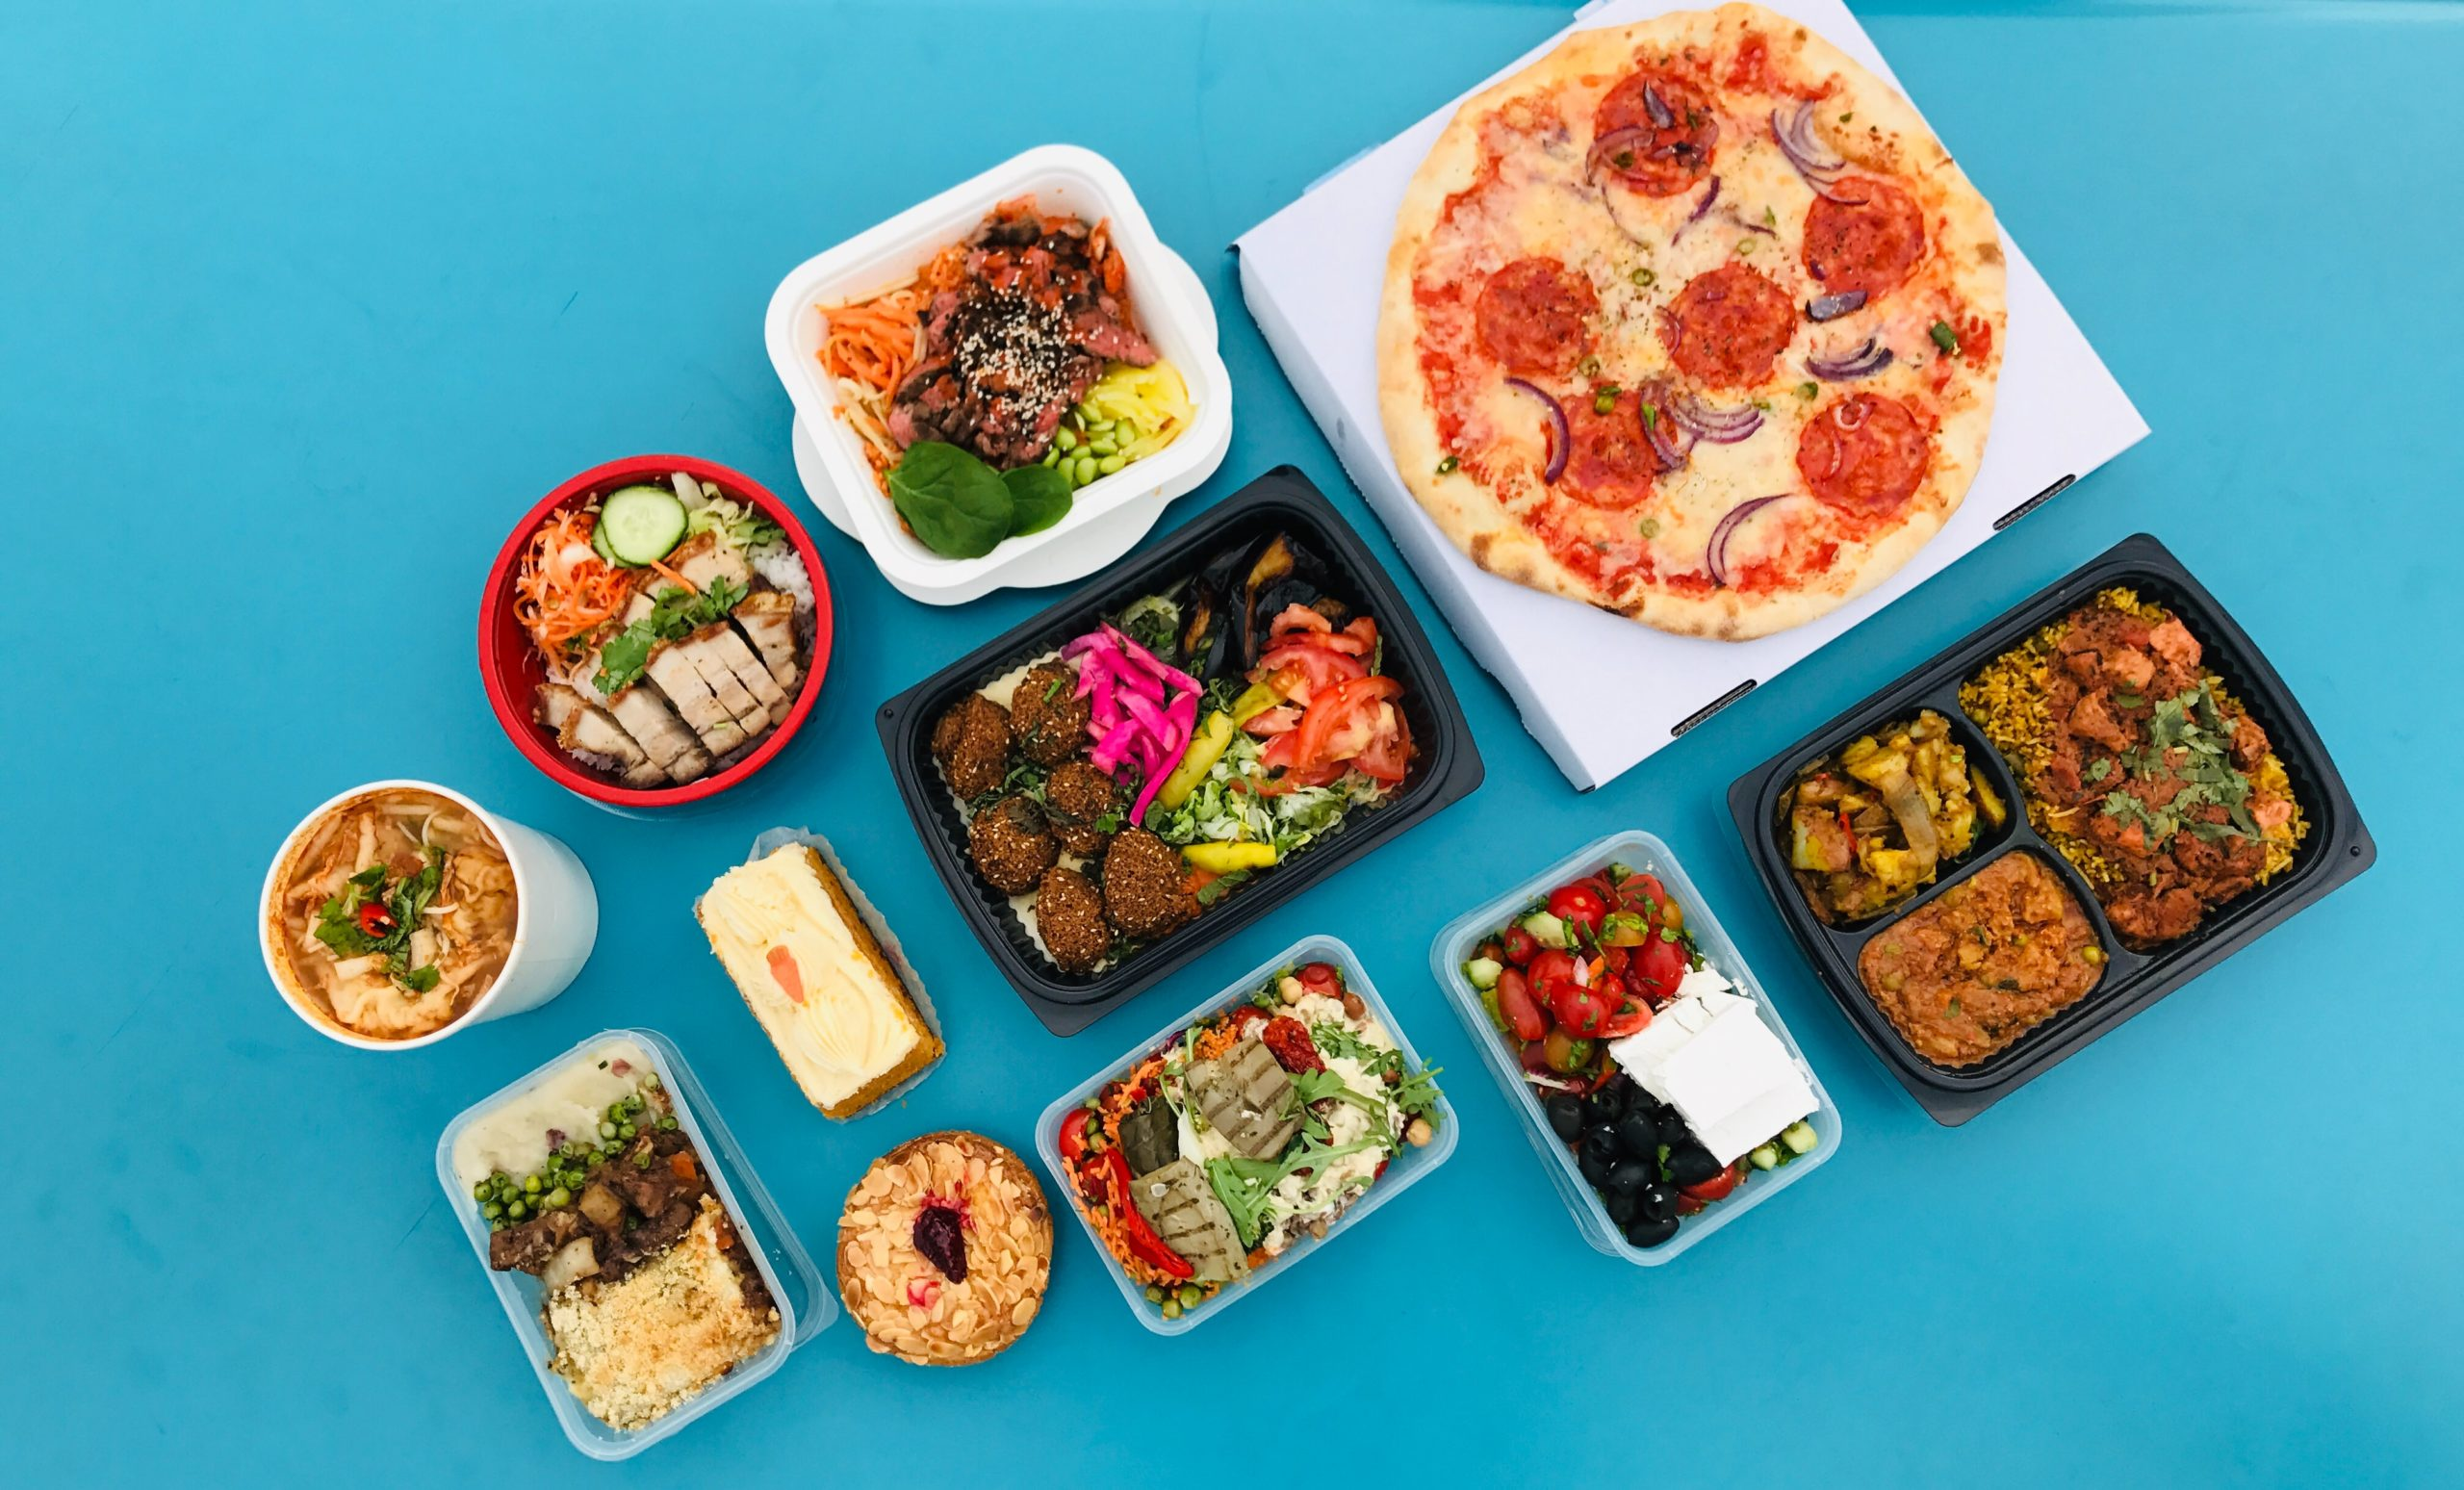 An assortment of prepared meal kits on a blue table.